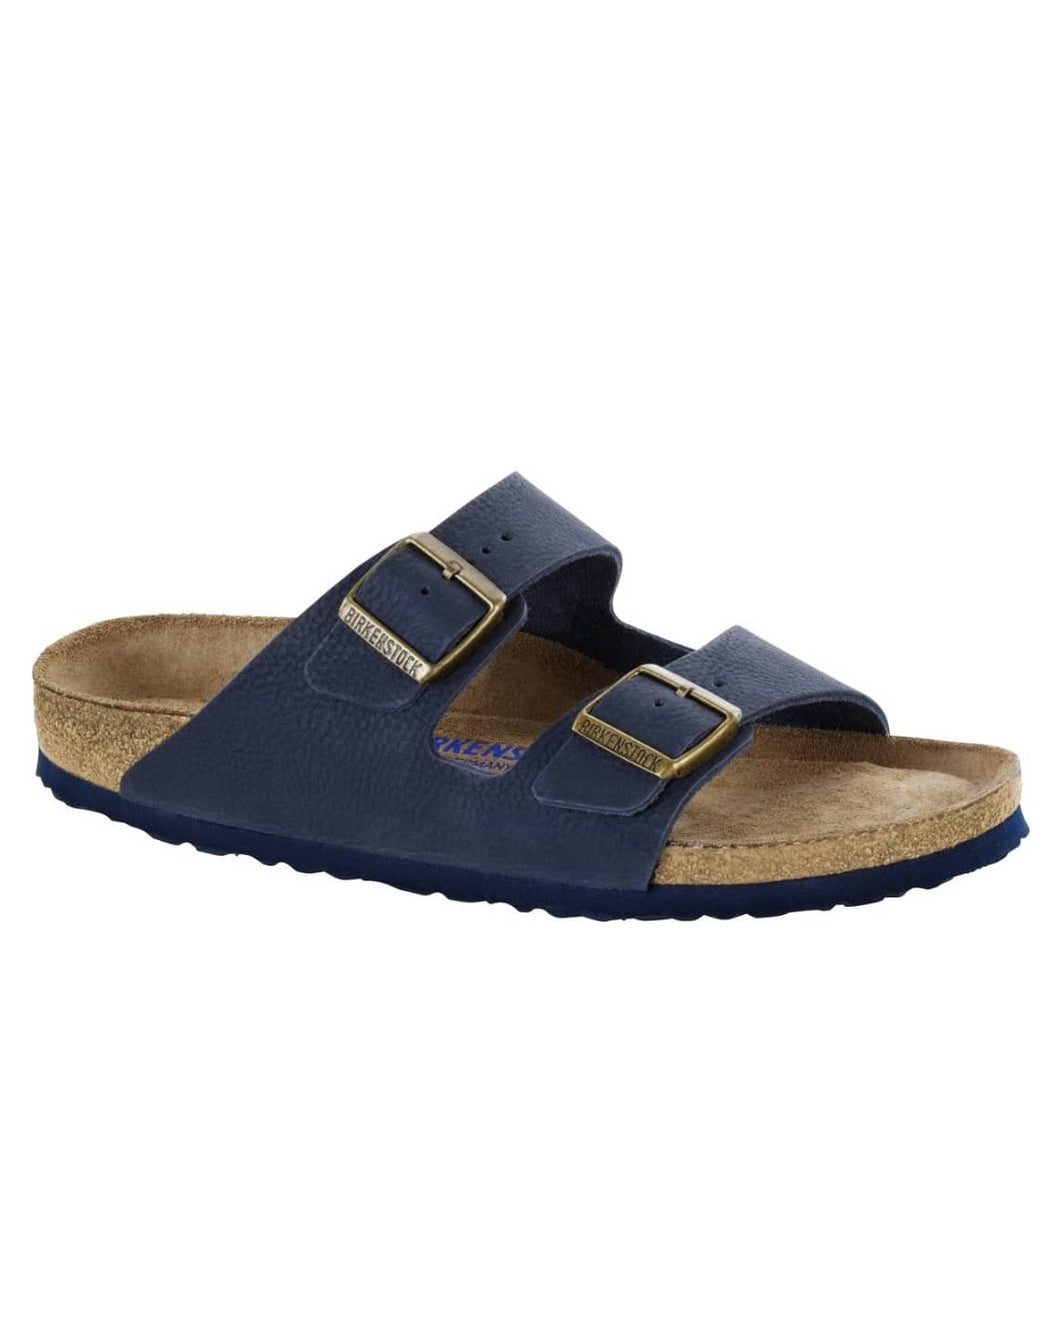 Men's Double Buckle Navy Blue Slippers